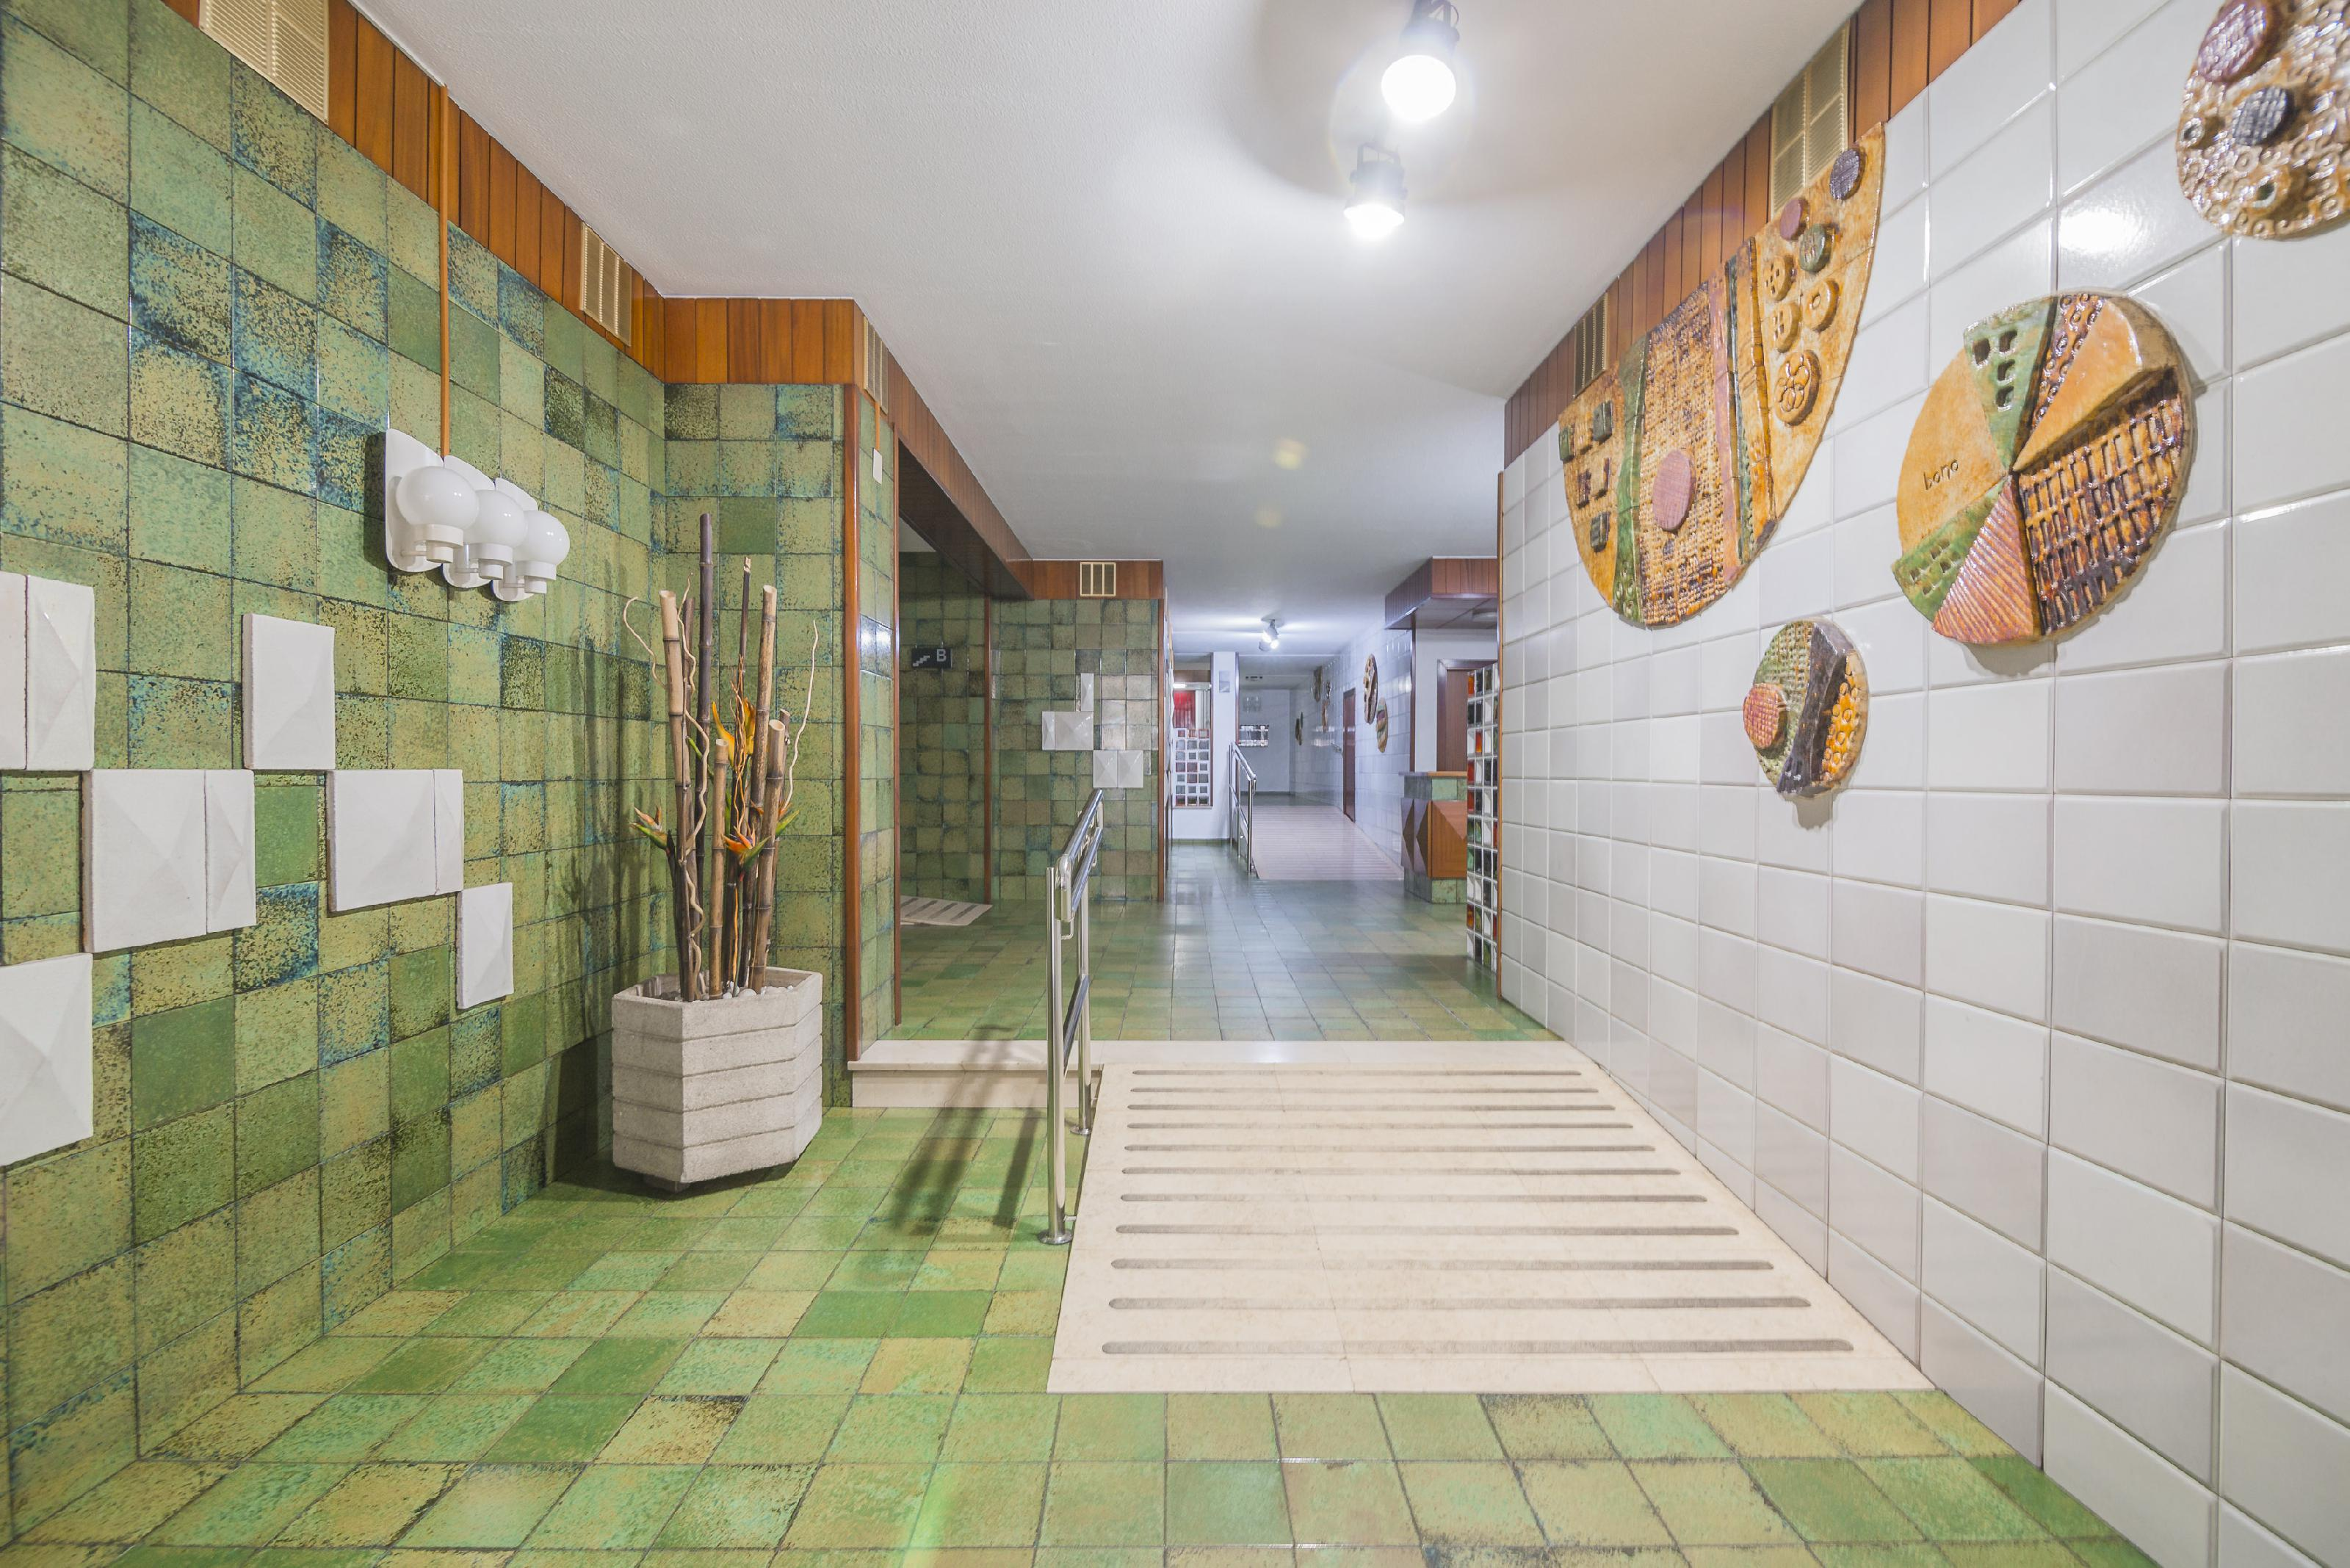 239426 Flat for sale in Les Corts, Les Corts 23